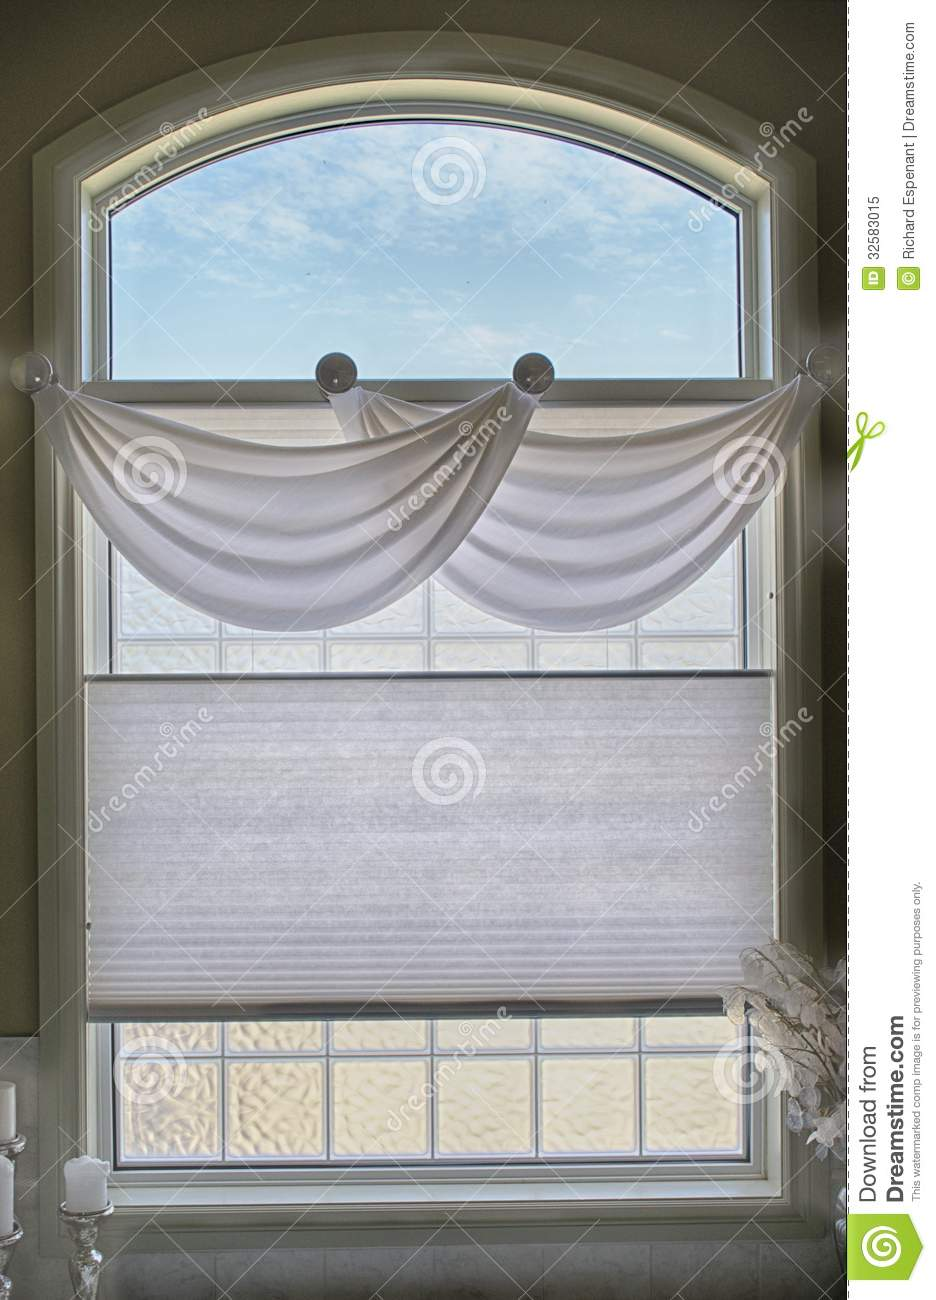 Bathroom Window And Valance Royalty Free Stock Photo